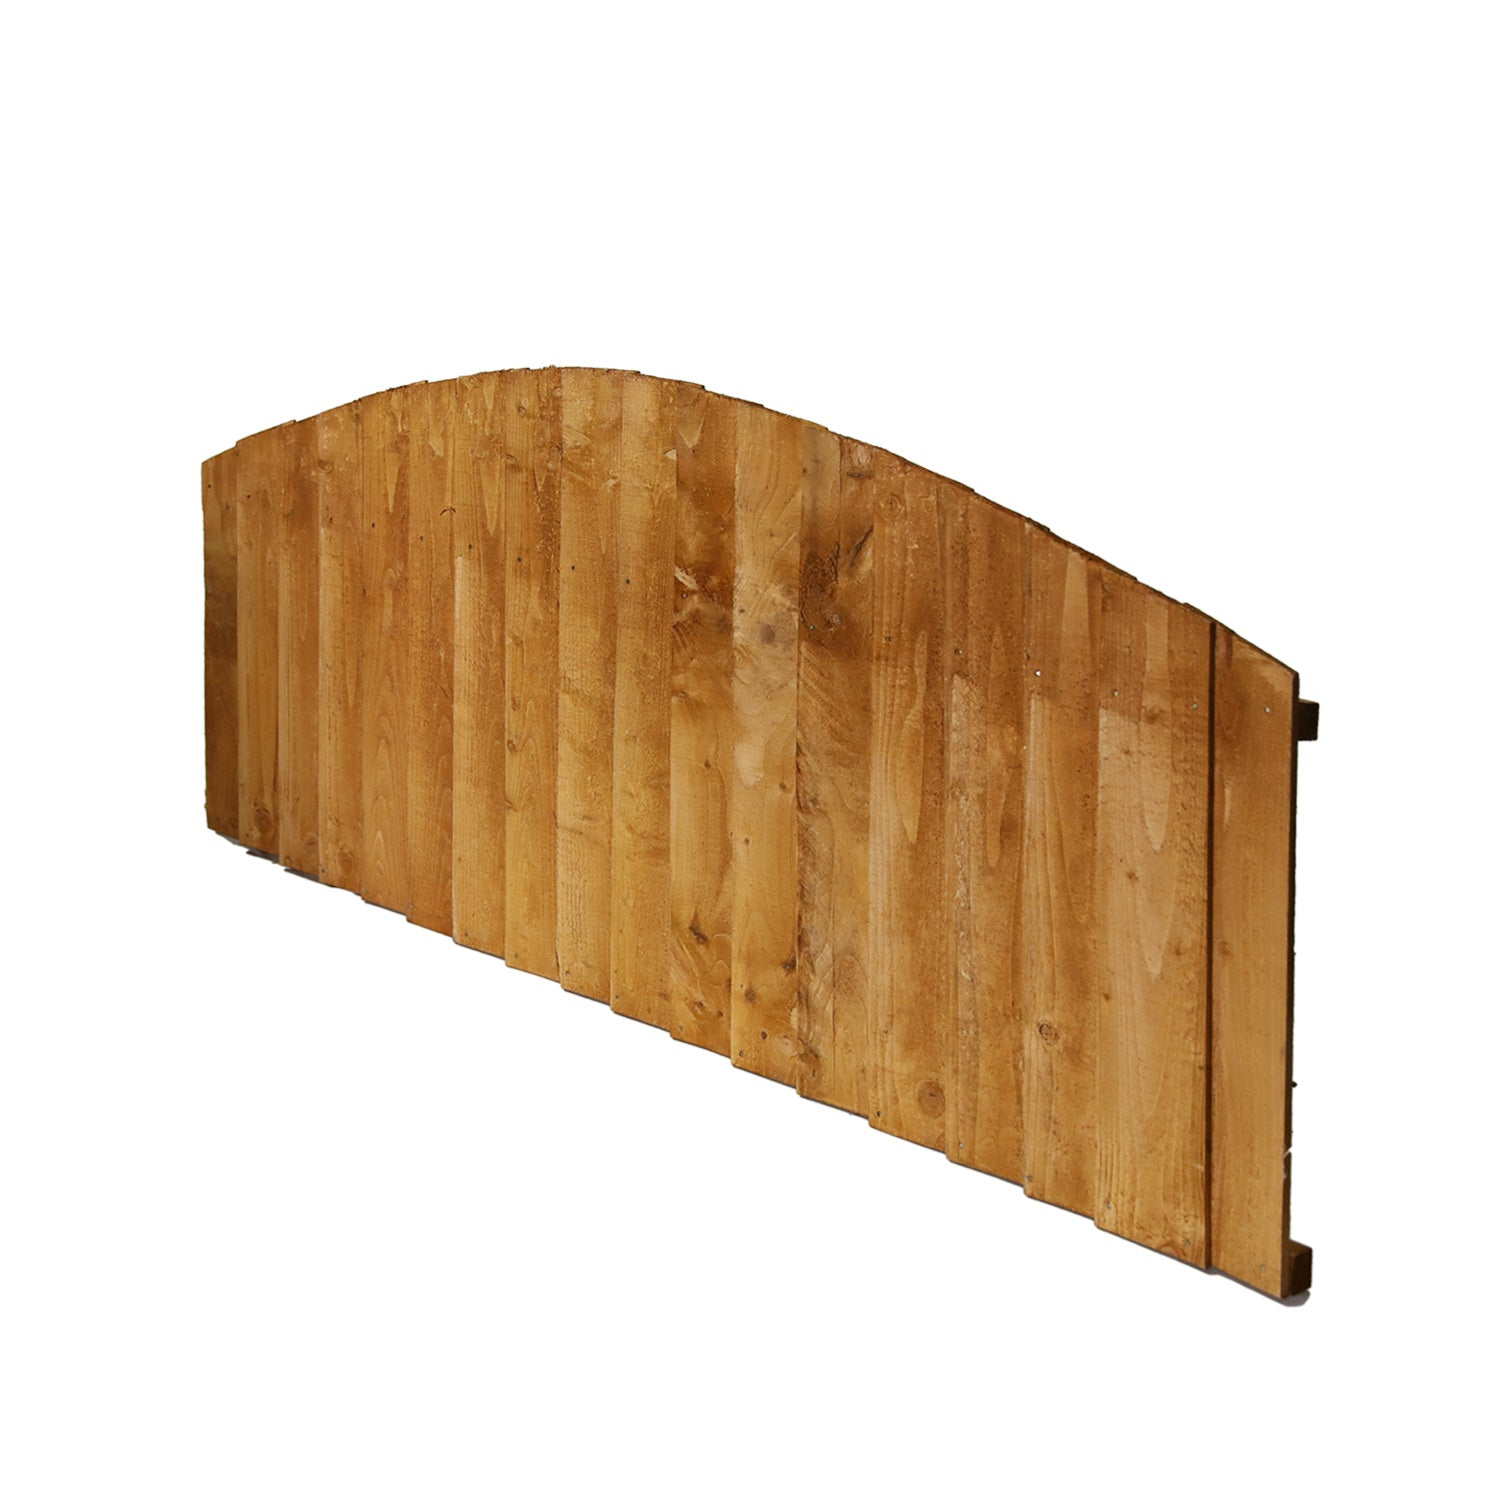 6' x 2' + Dome Featheredge Fence Panel